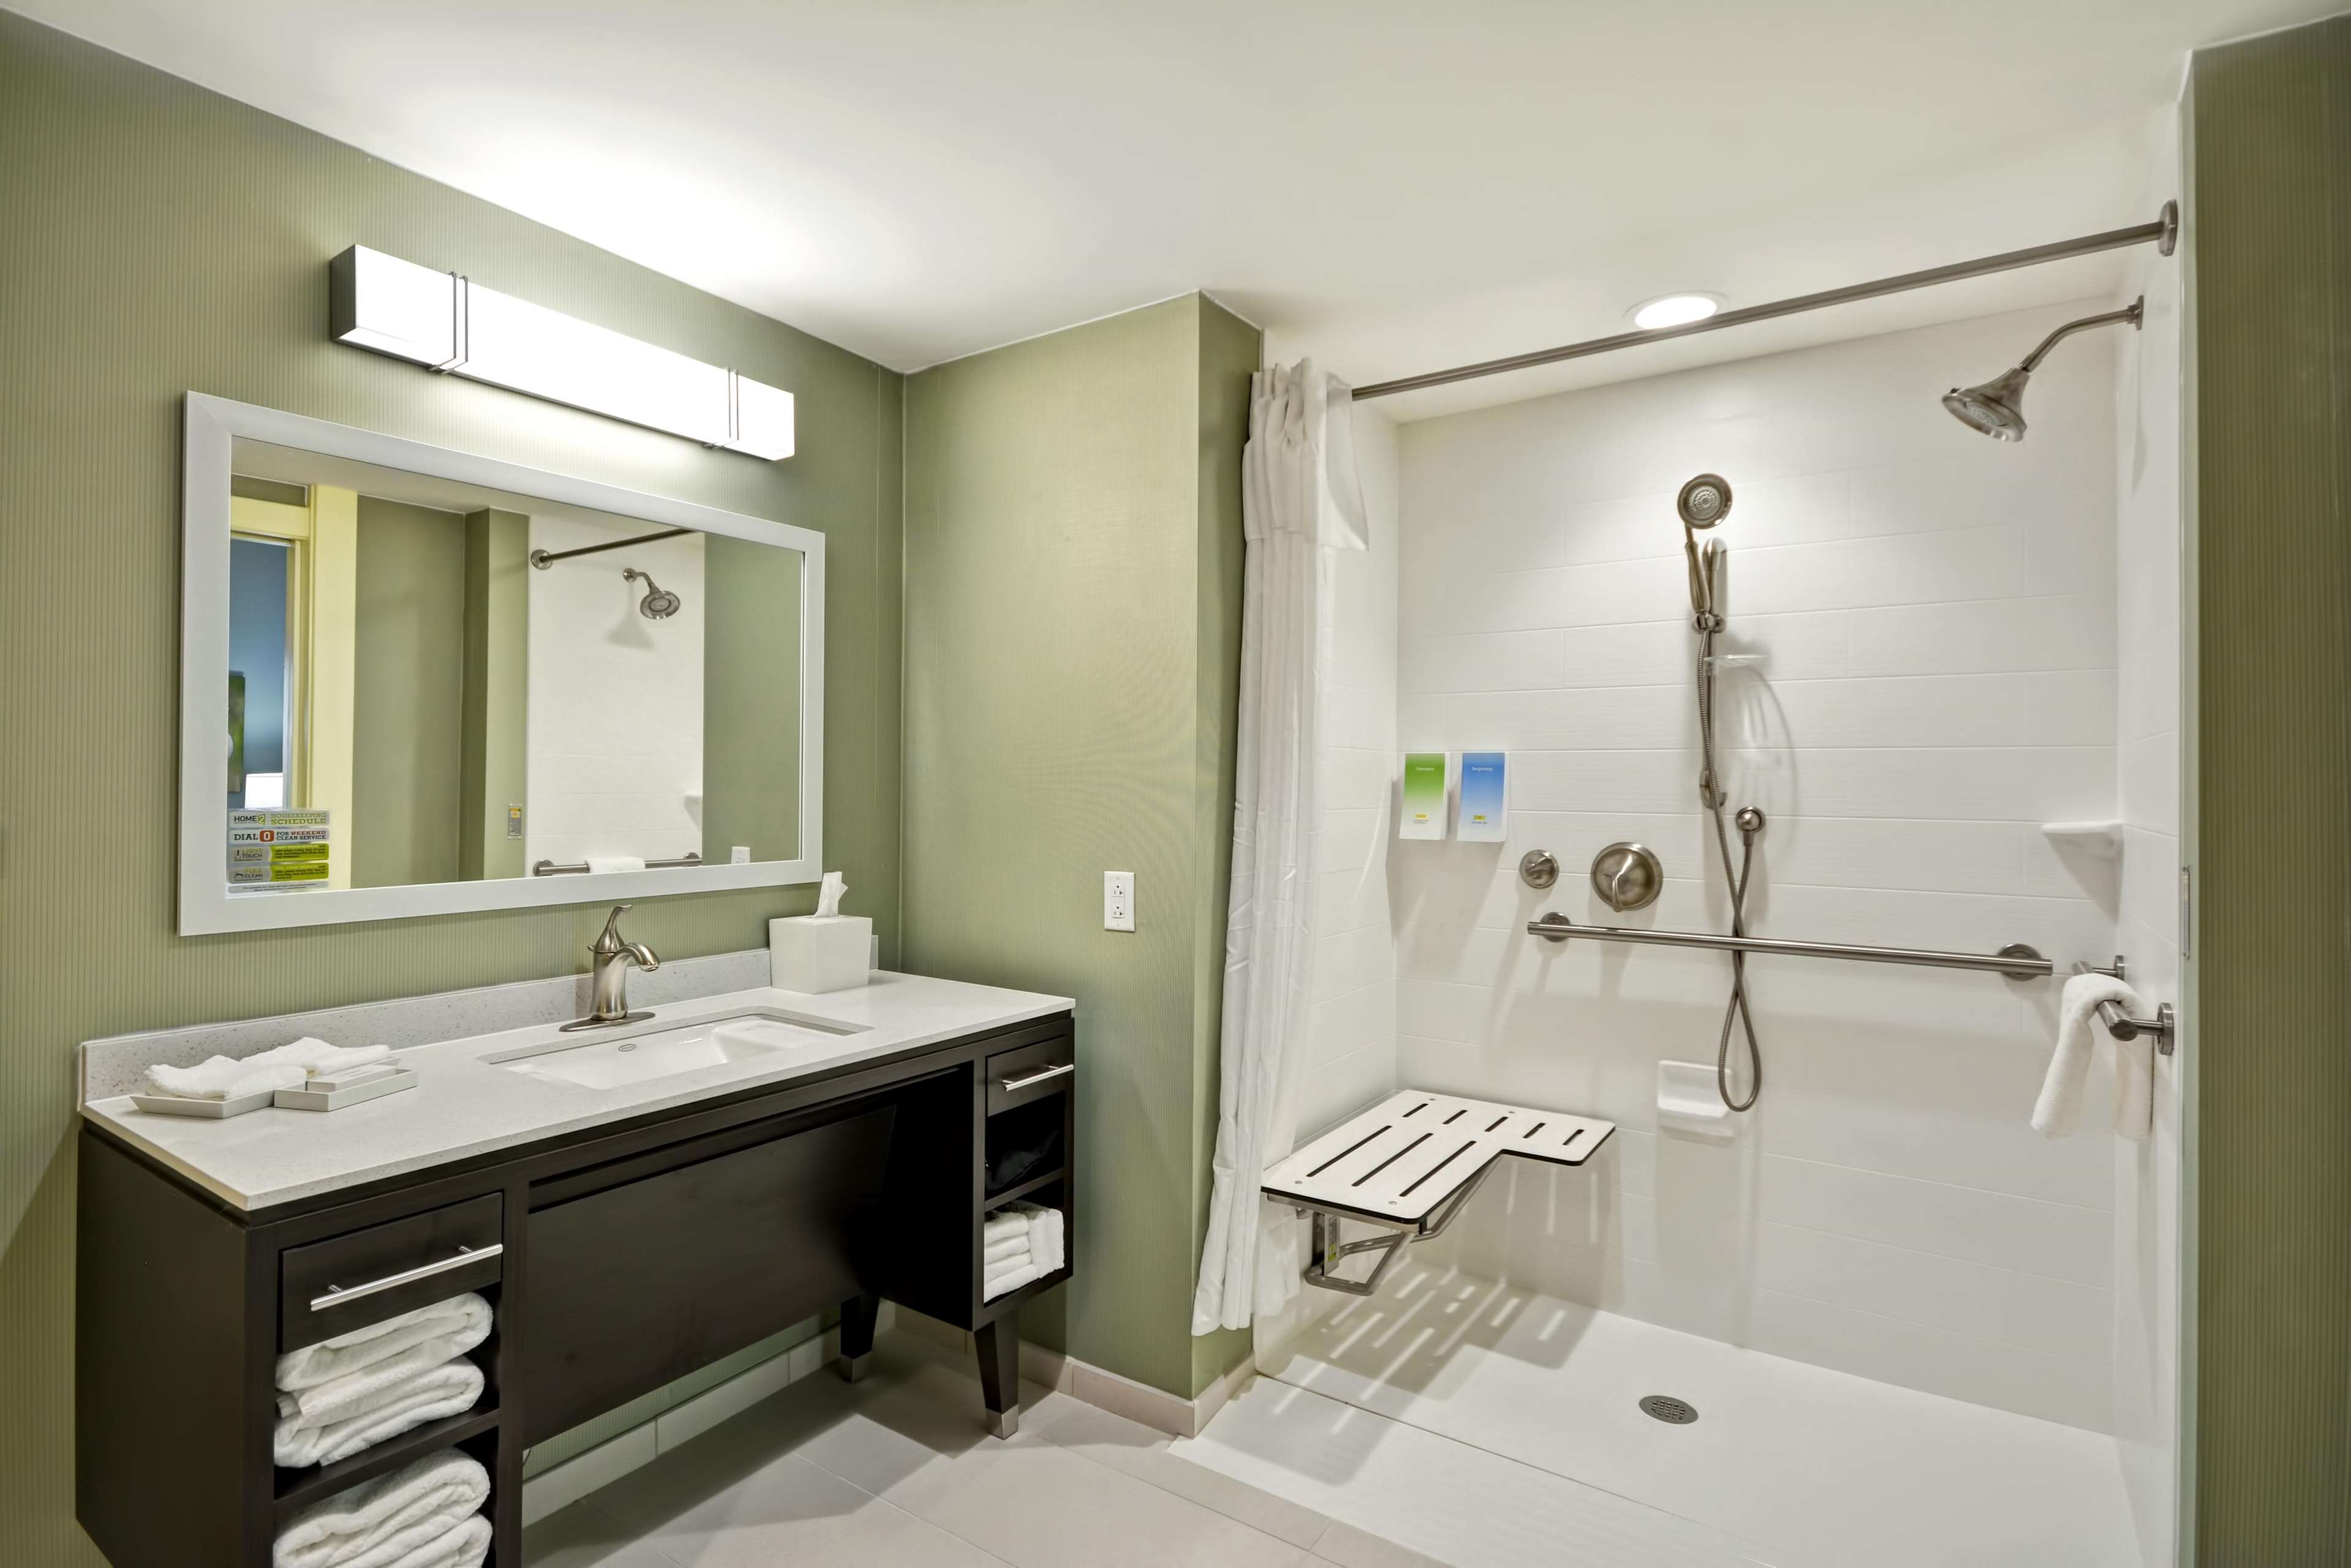 Home2 Suites By Hilton Maumee Toledo image 18